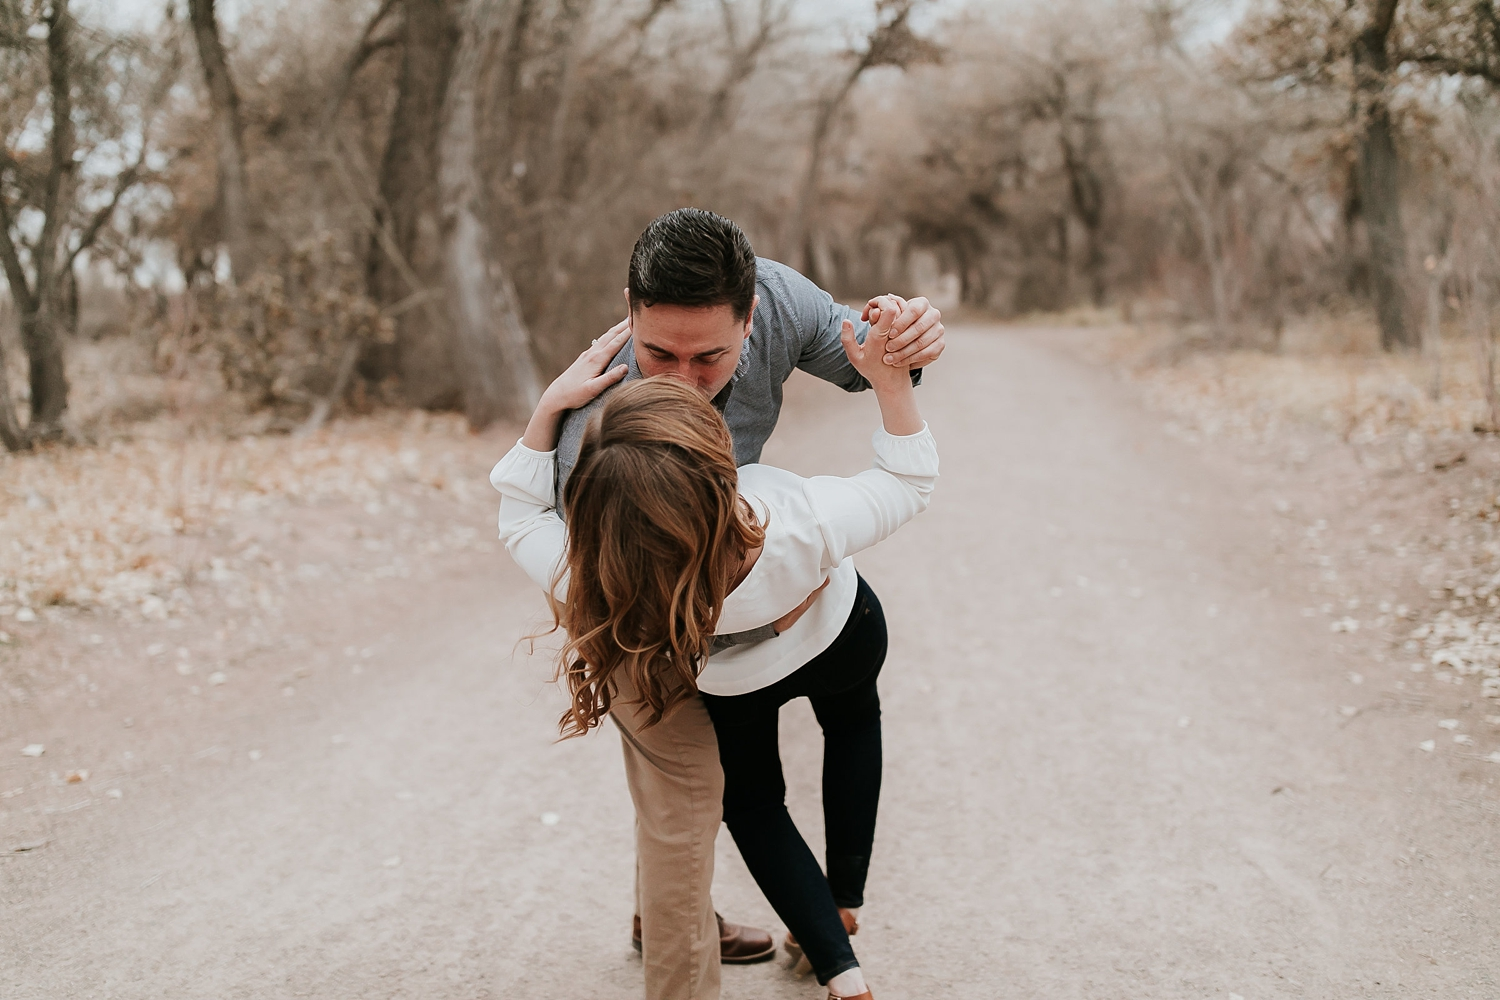 Alicia+lucia+photography+-+albuquerque+wedding+photographer+-+santa+fe+wedding+photography+-+new+mexico+wedding+photographer+-+new+mexico+engagement+-+albuquerque+engagement+-+spring+new+mexico+engagement+-+bosque+engagement_0020.jpg